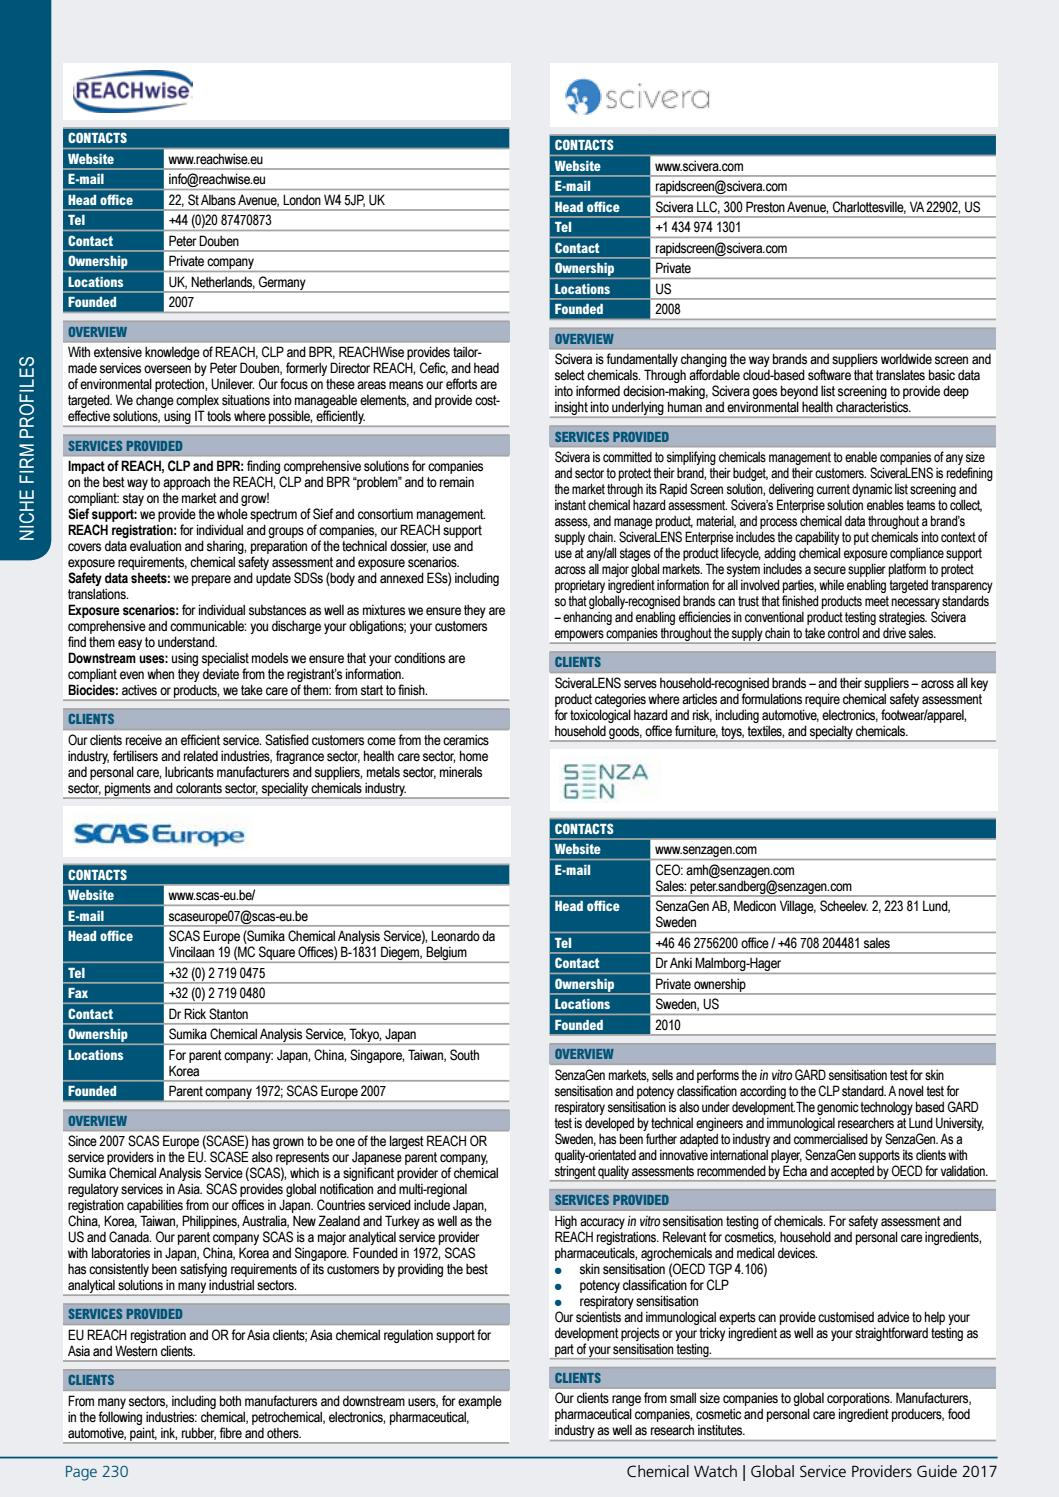 Global Service Providers Guide 2017 by Chemical Watch - issuu